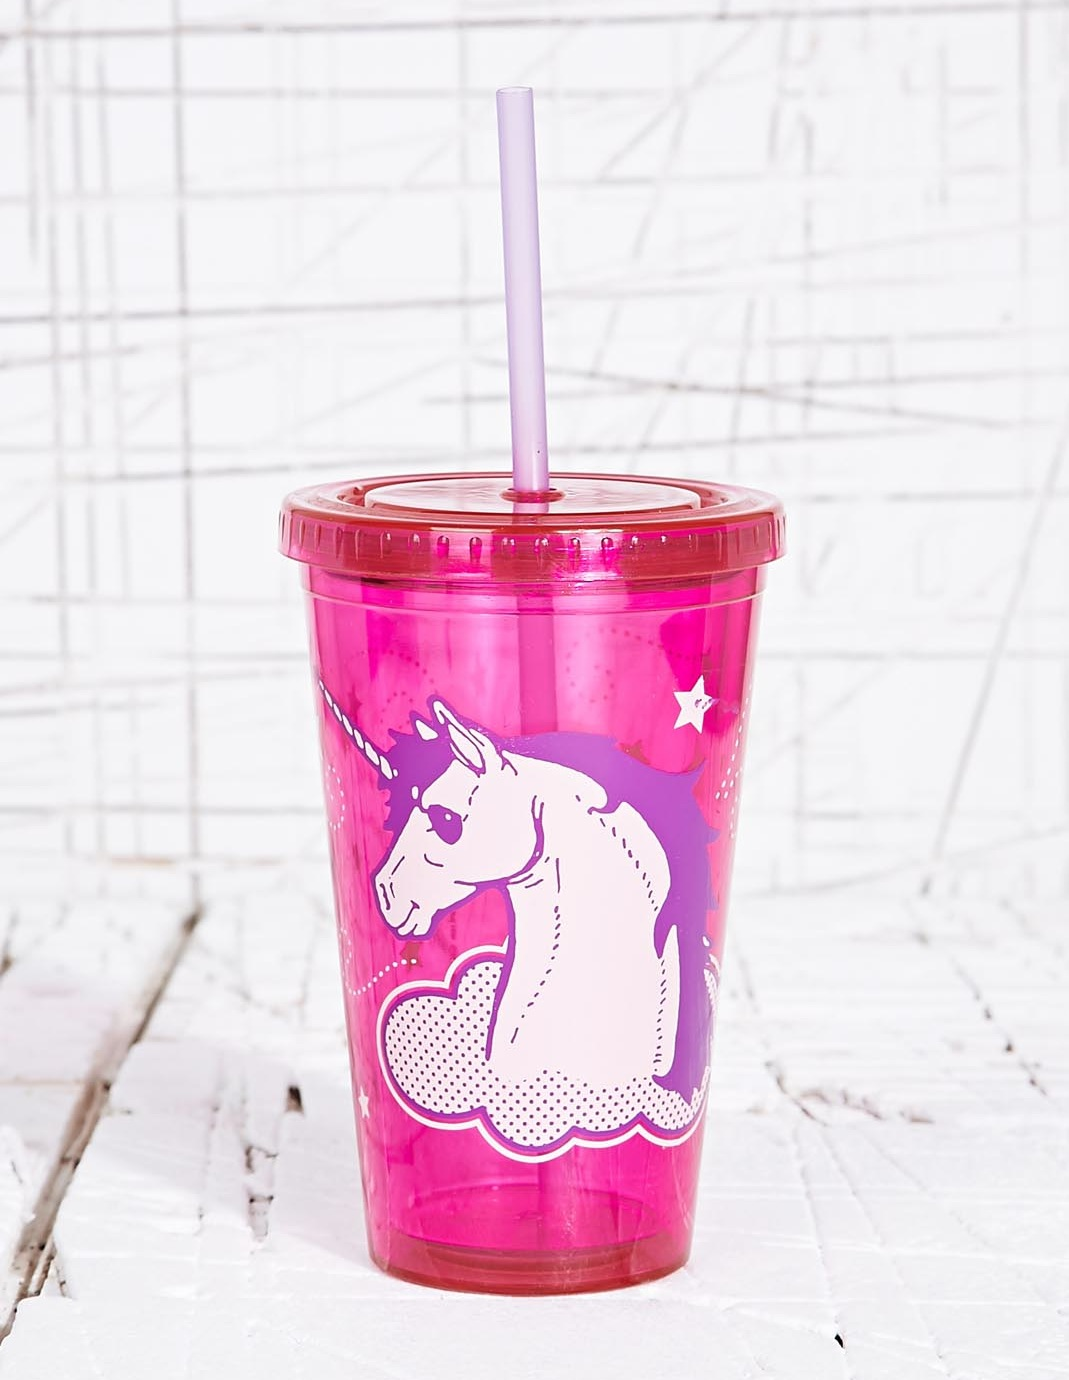 unicorn-cup-urban-outfitters